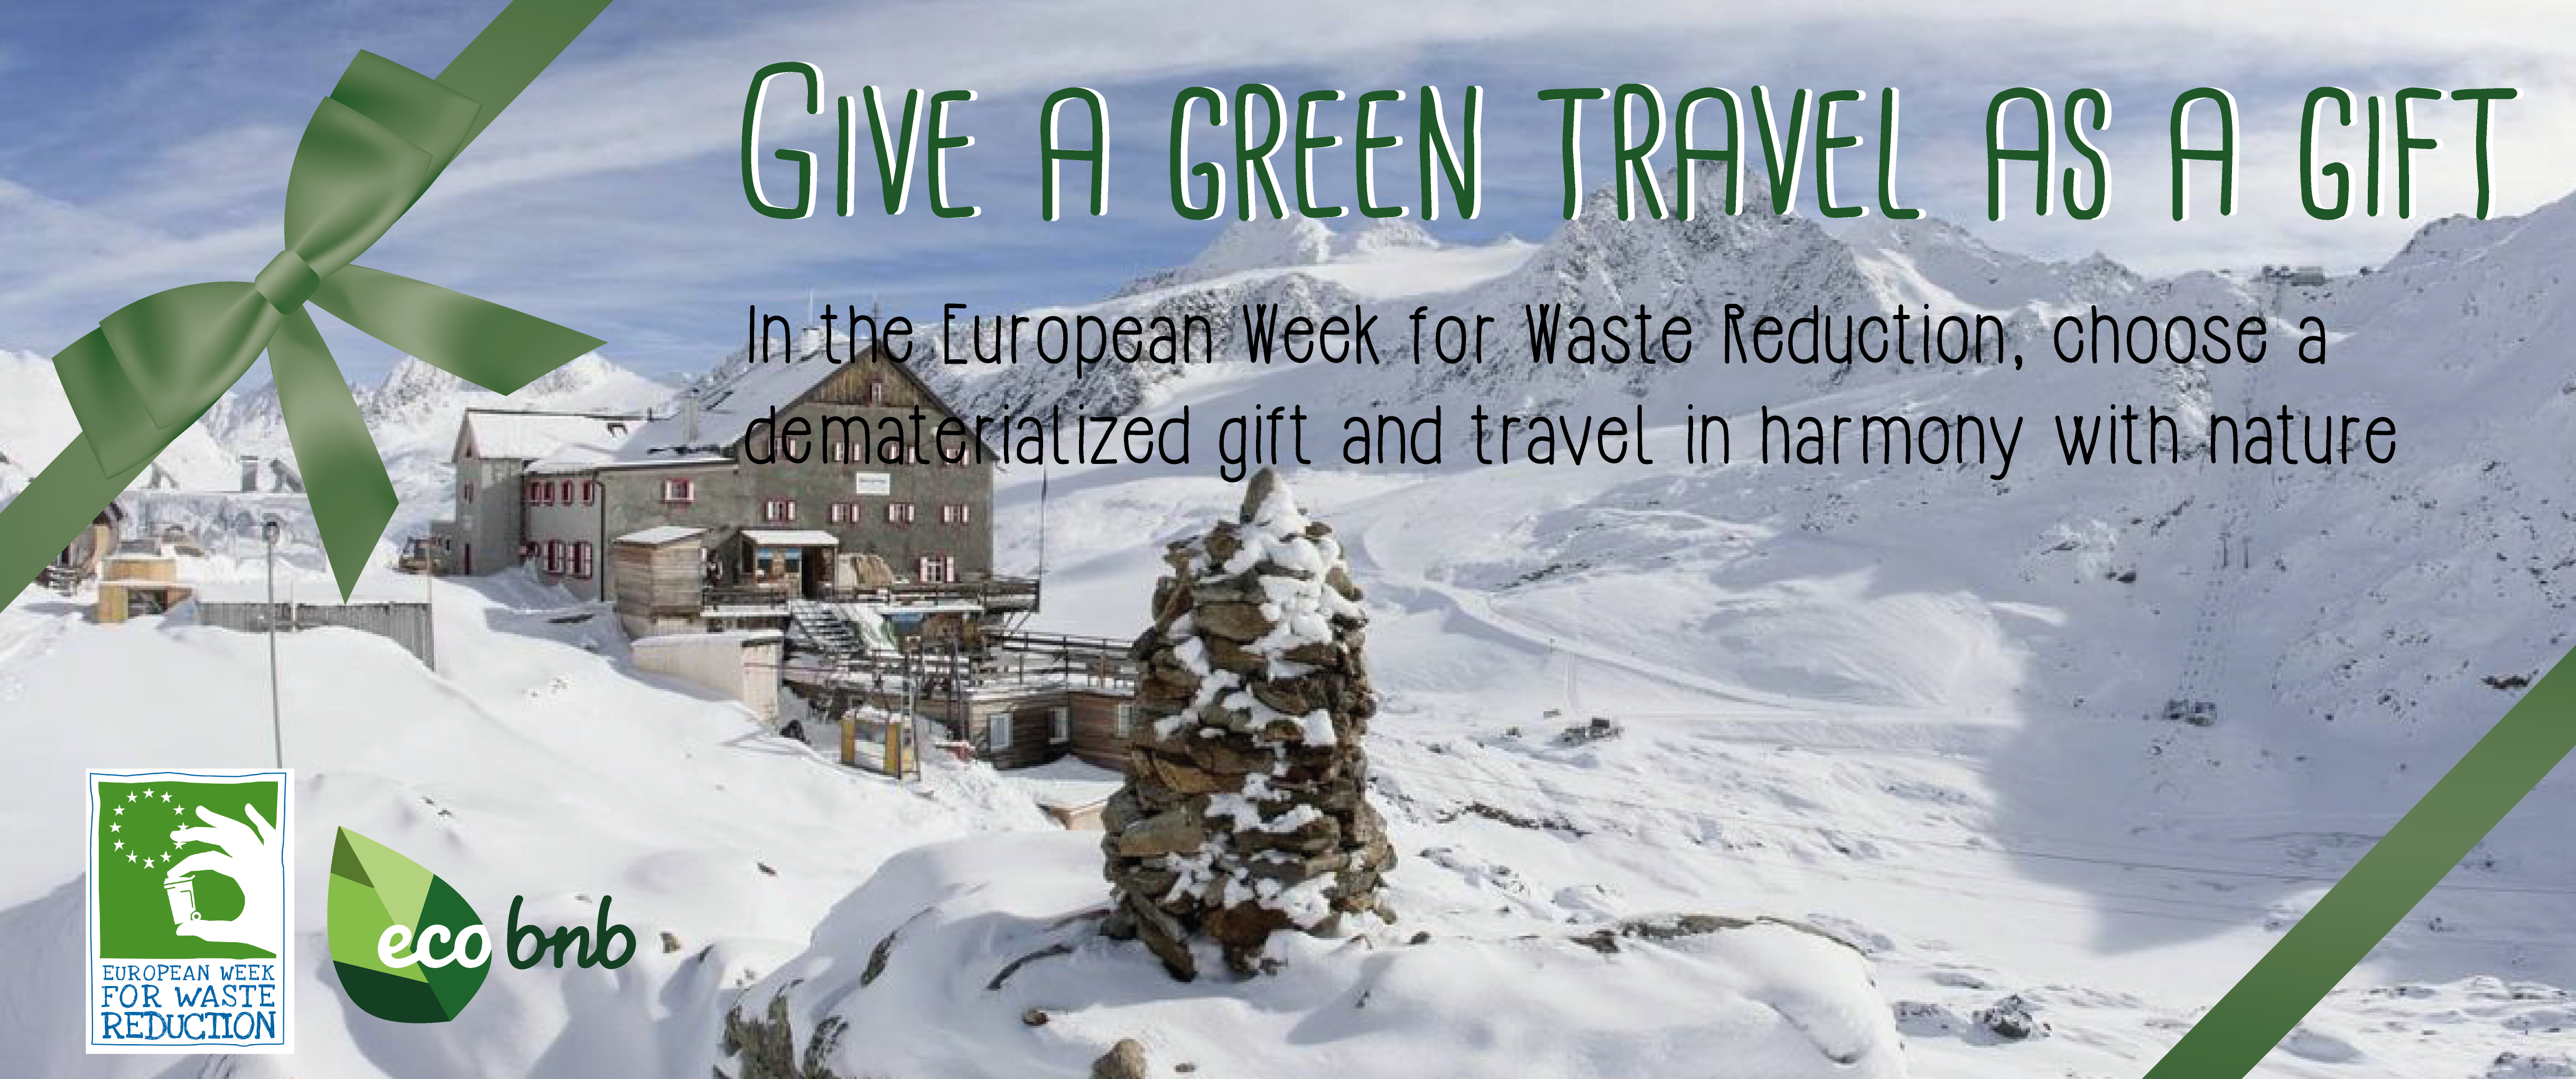 give a green travel as a gift